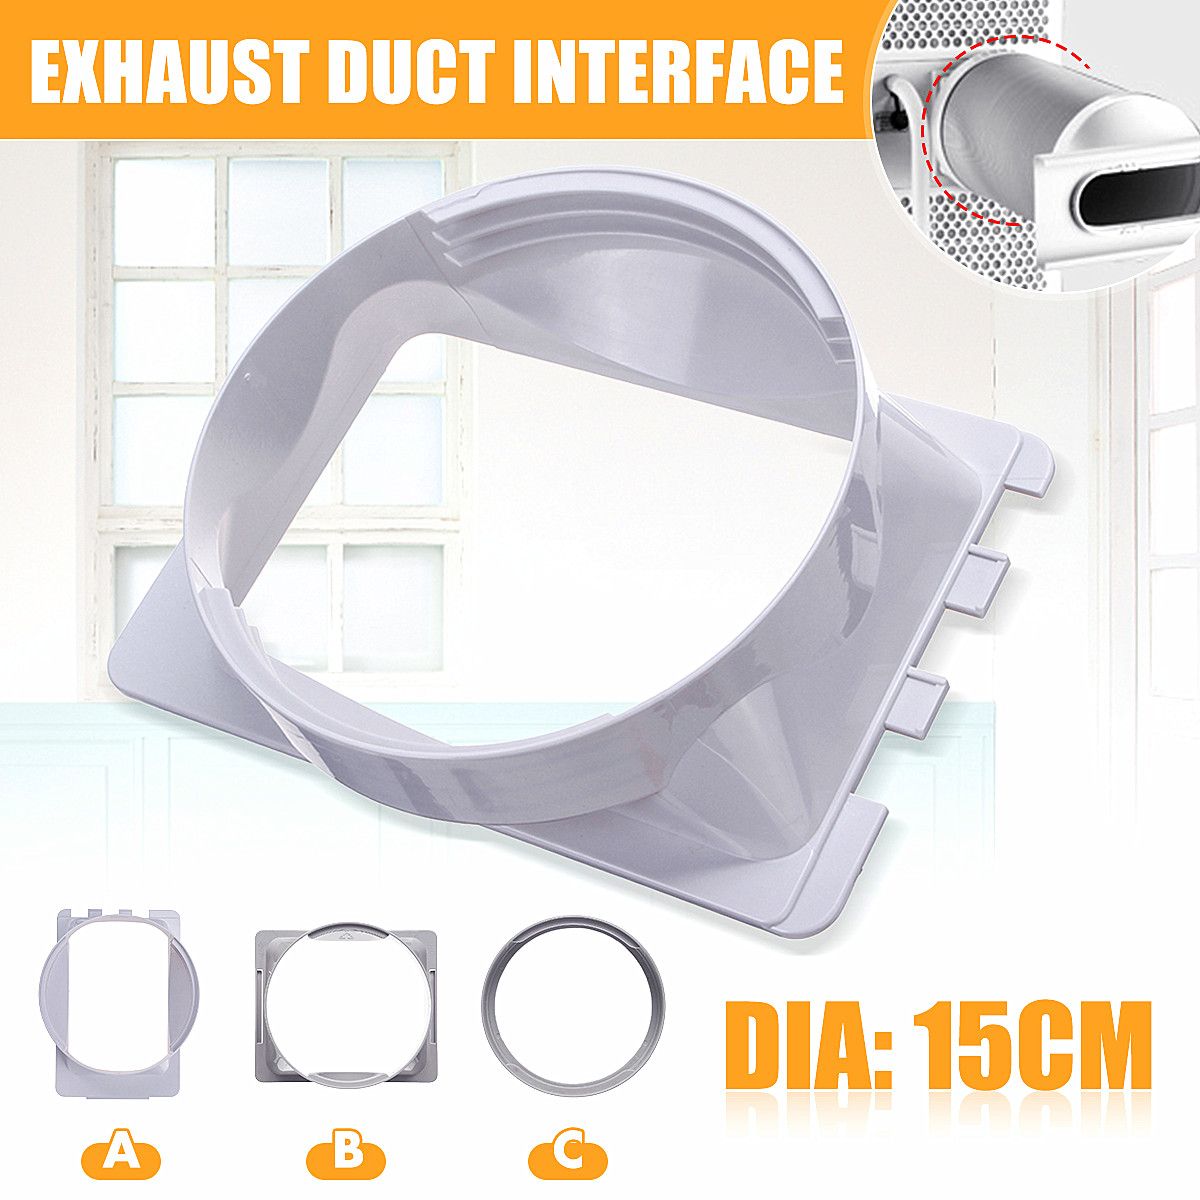 3 Types 15cm/5.9 Portable Air Conditioning Body Exhaust Duct Interface ABS Home Air Conditioner Parts Exhaust Pipe Connector3 Types 15cm/5.9 Portable Air Conditioning Body Exhaust Duct Interface ABS Home Air Conditioner Parts Exhaust Pipe Connector